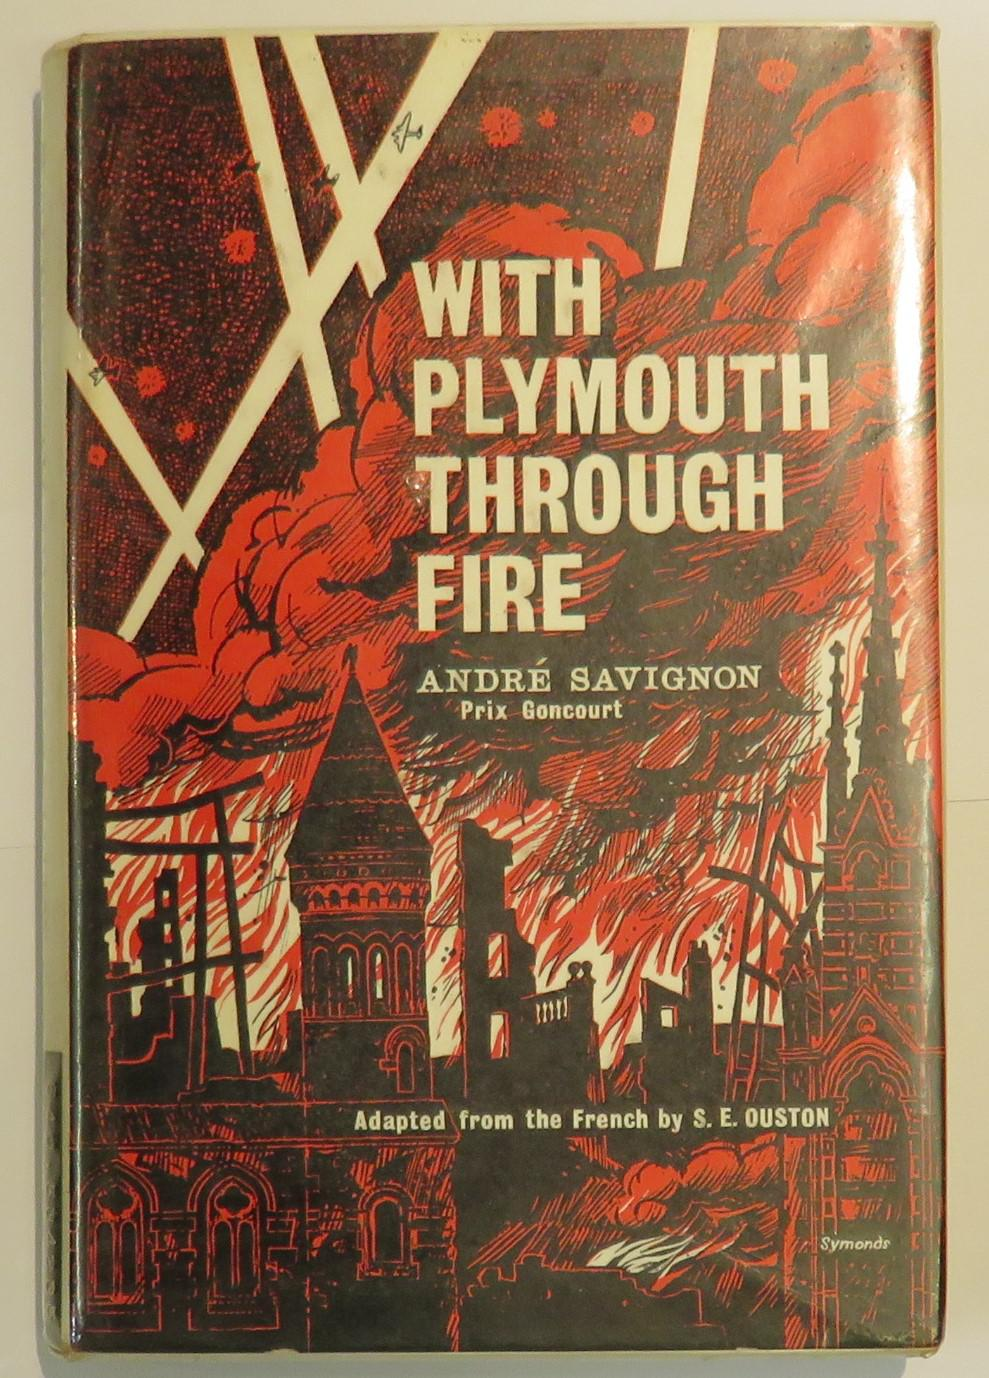 With Plymouth Through Fire